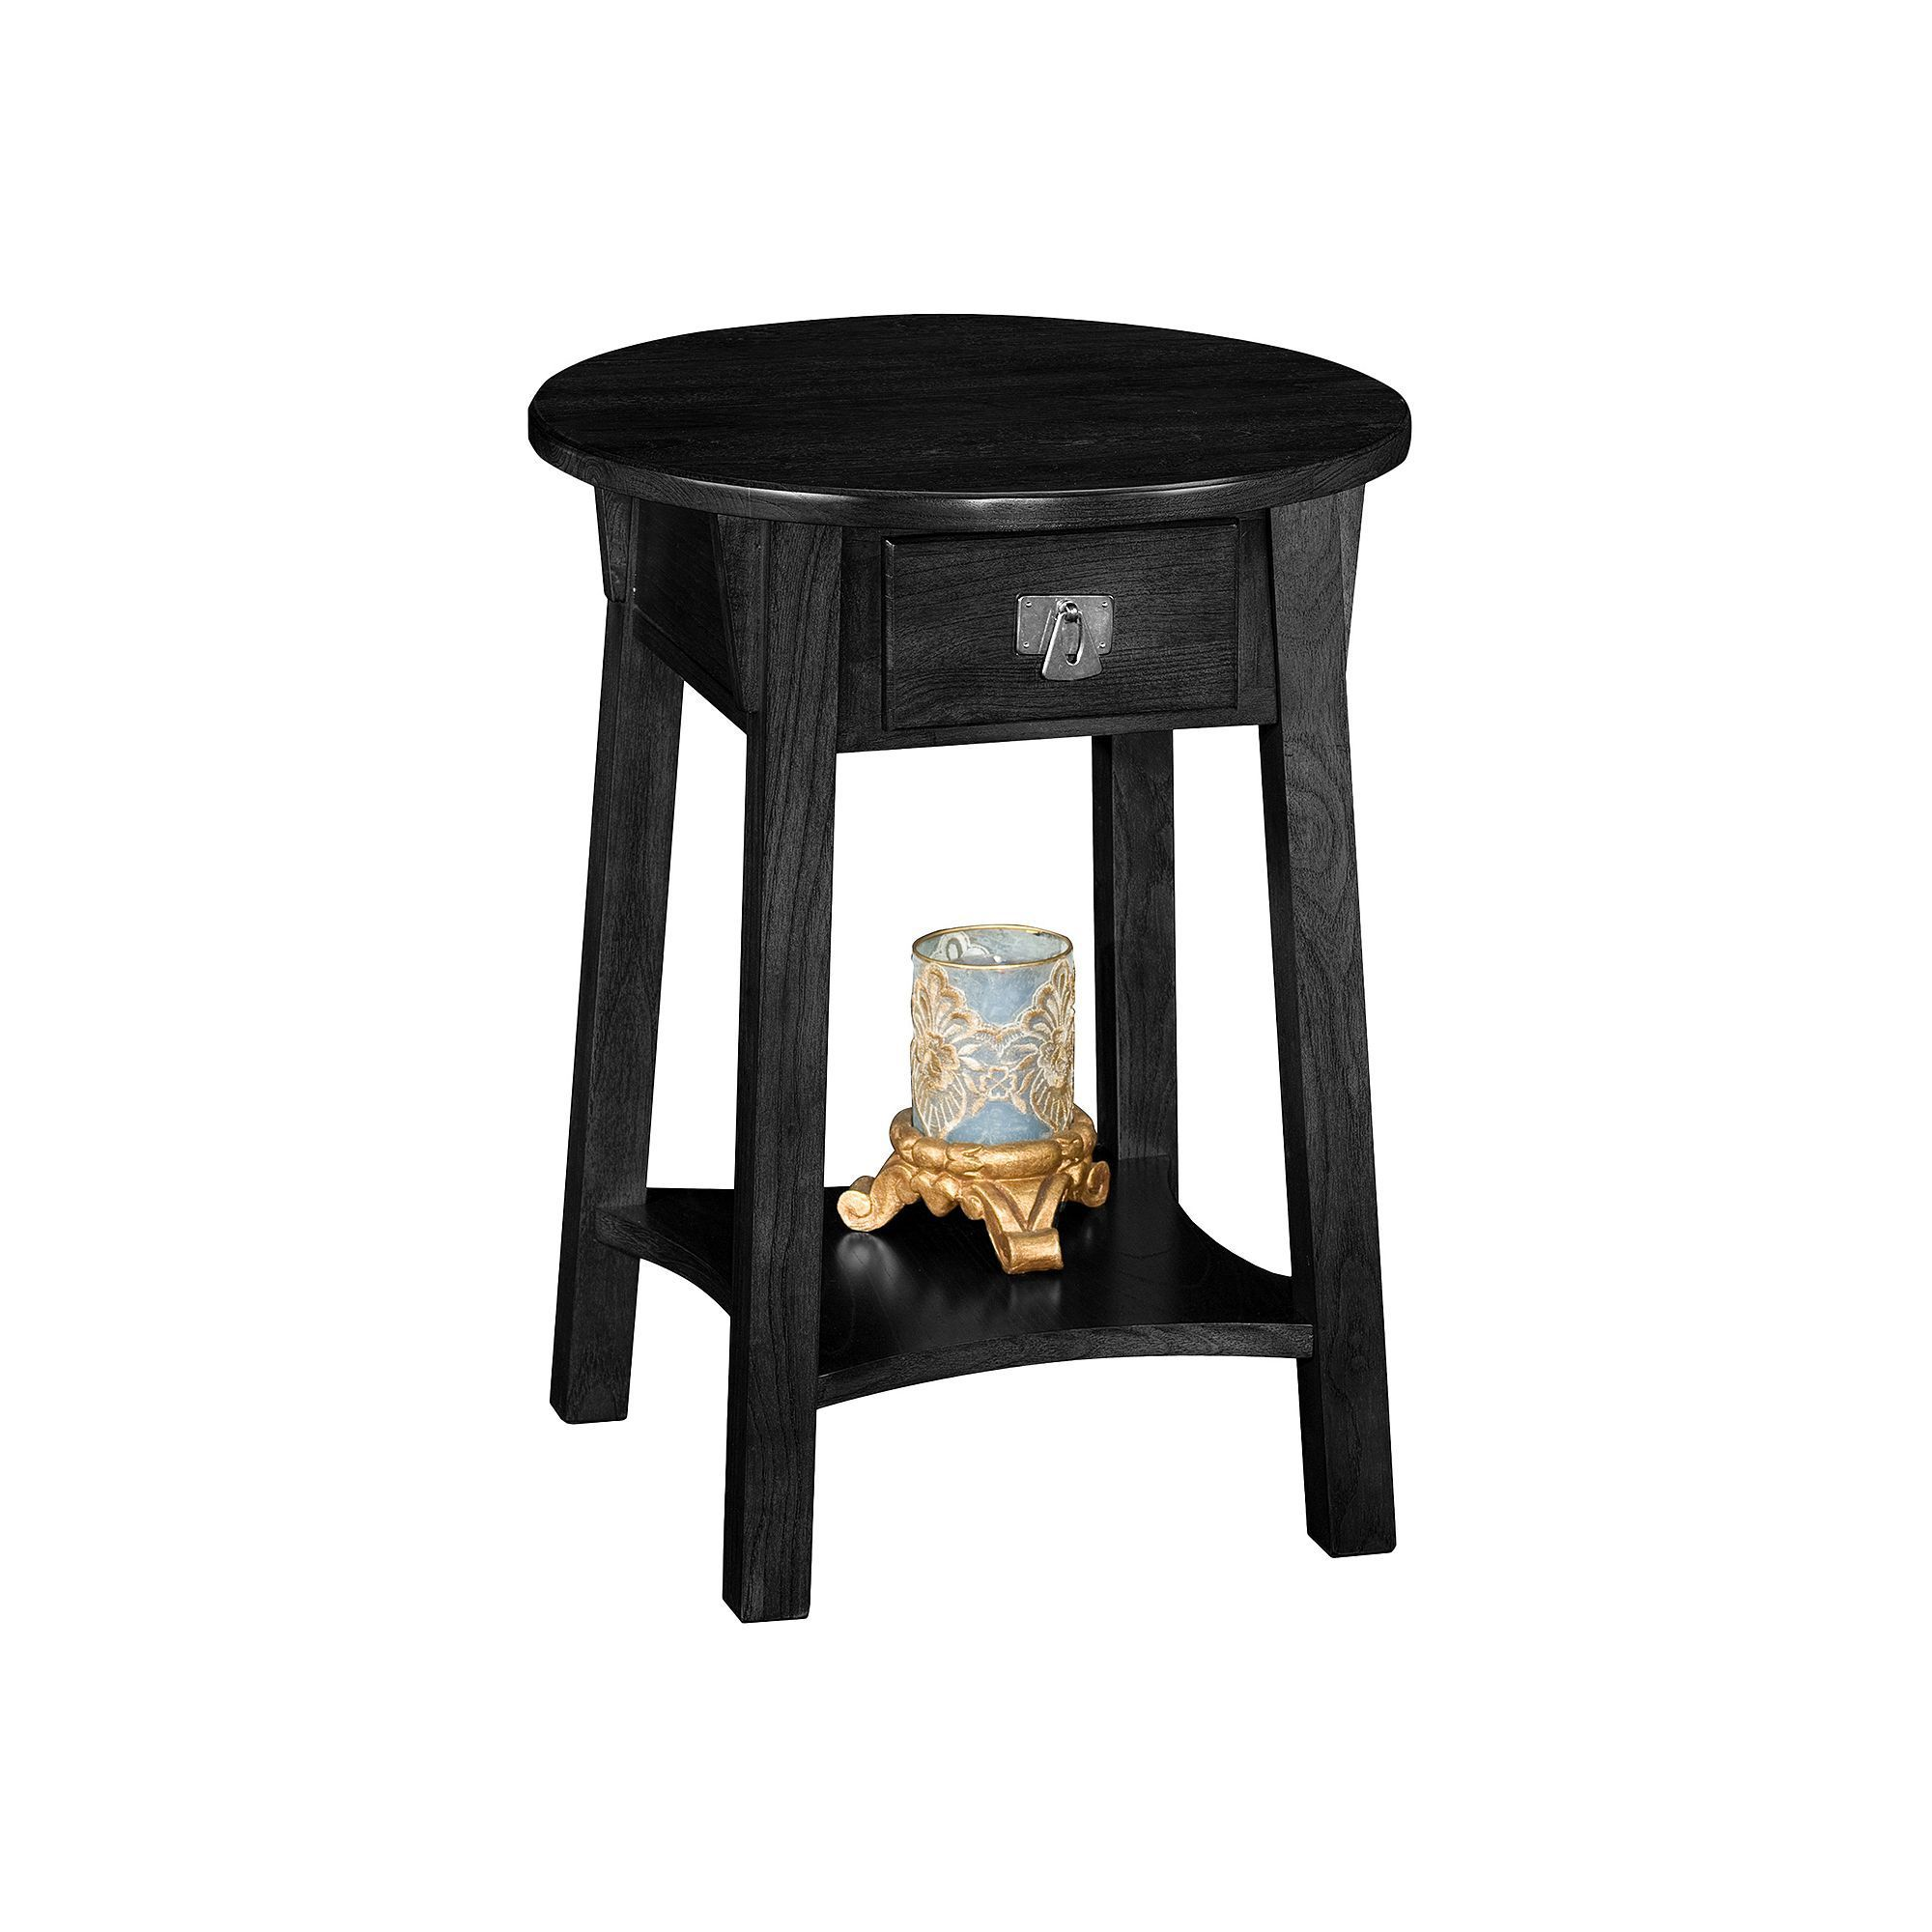 Leick Furniture Round End Table, Black (With images) End